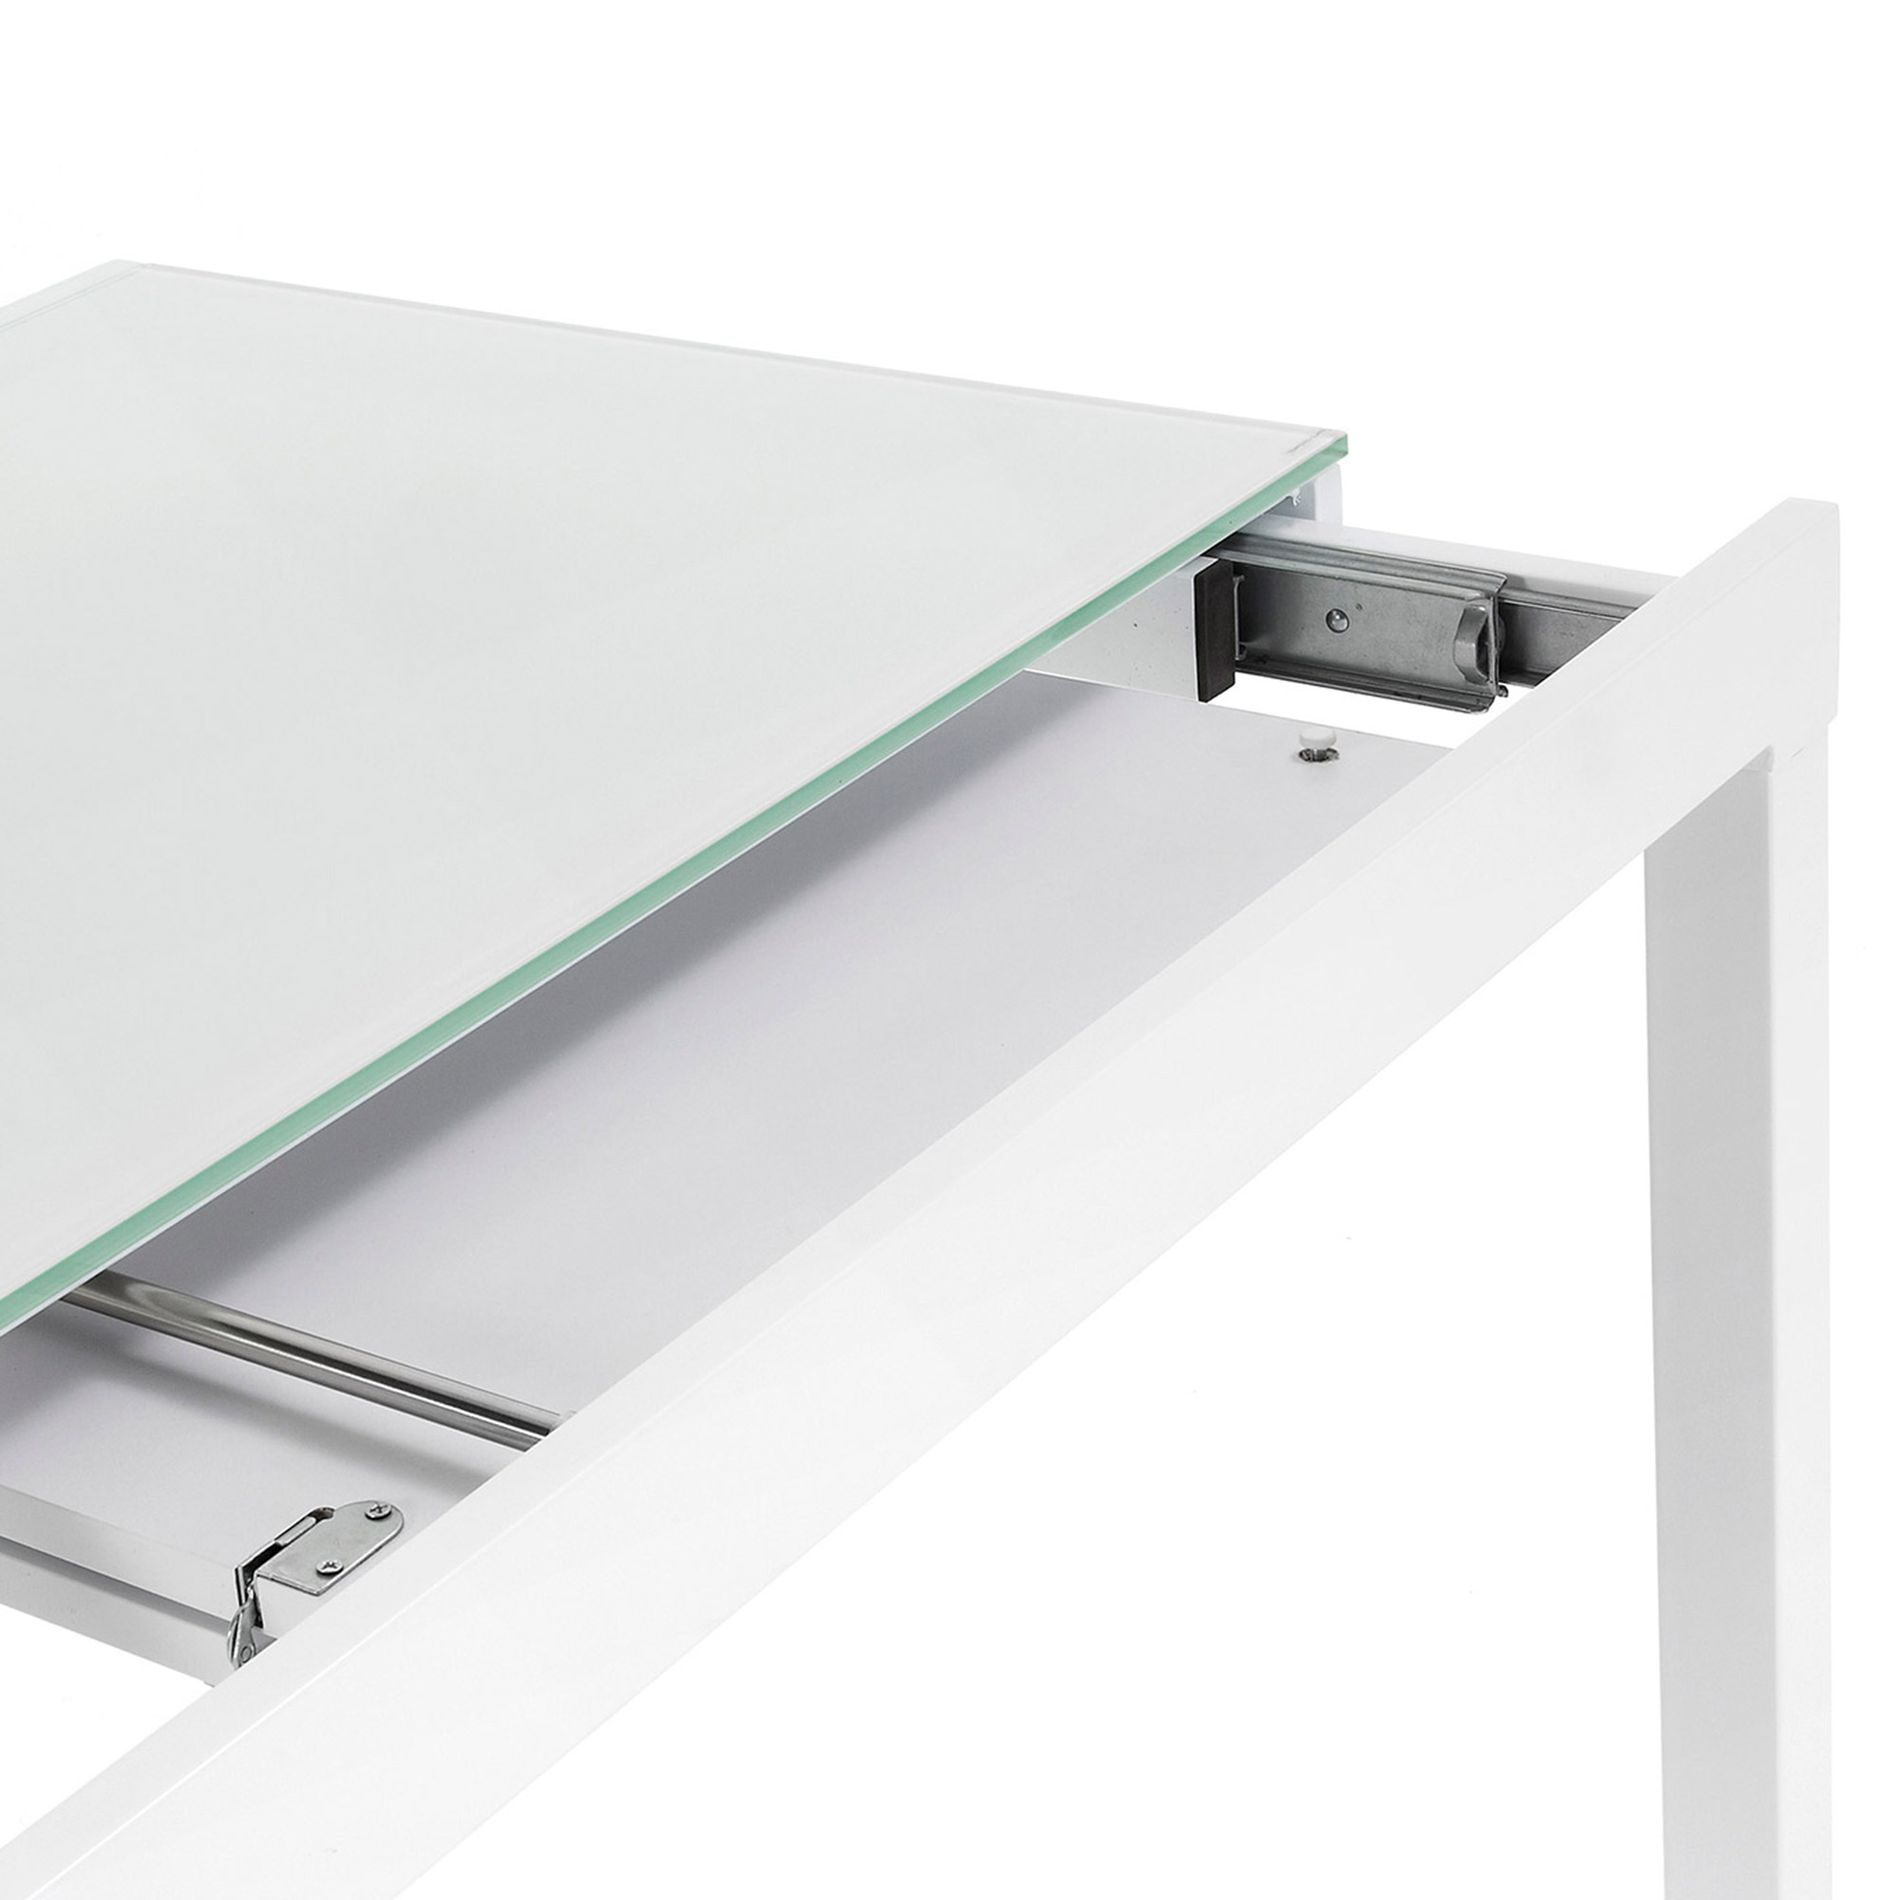 Mitra Extensible Table White 65 120 Cm Kave Home